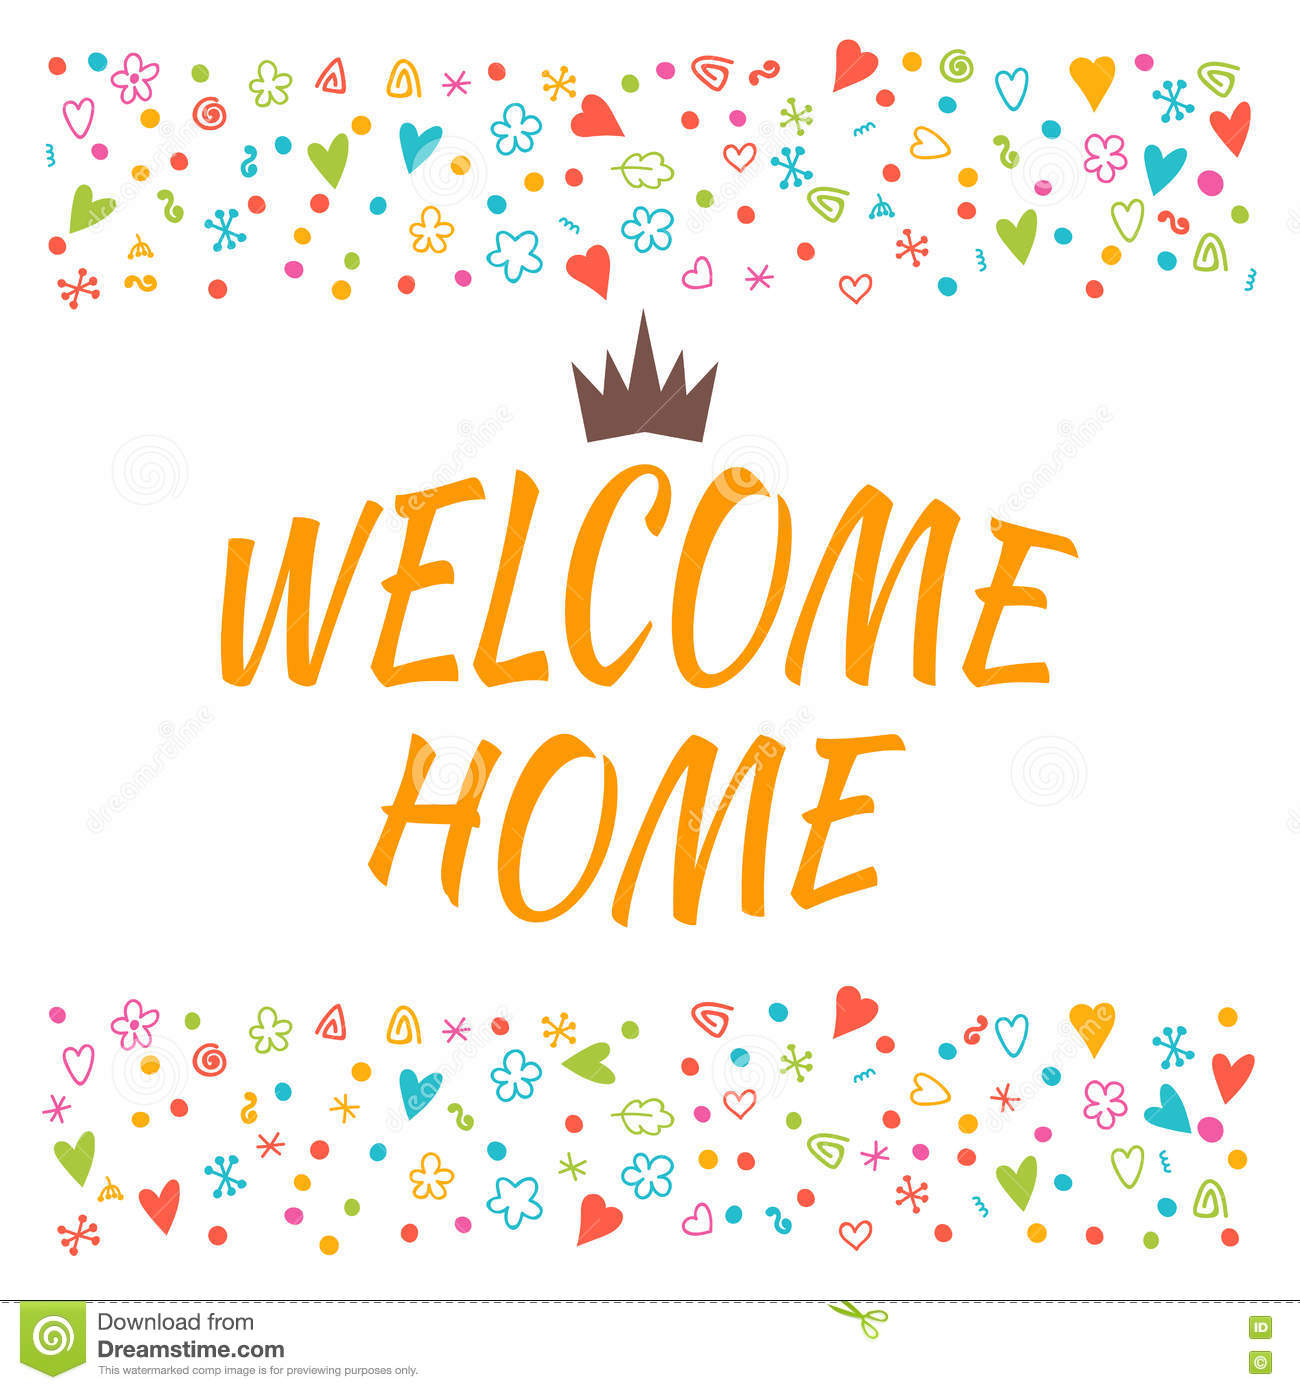 welcome-home-text-colorful-design-elements-cute-postcard-decorative-lettering-greeting-card-vector-illustration-72595461.jpg